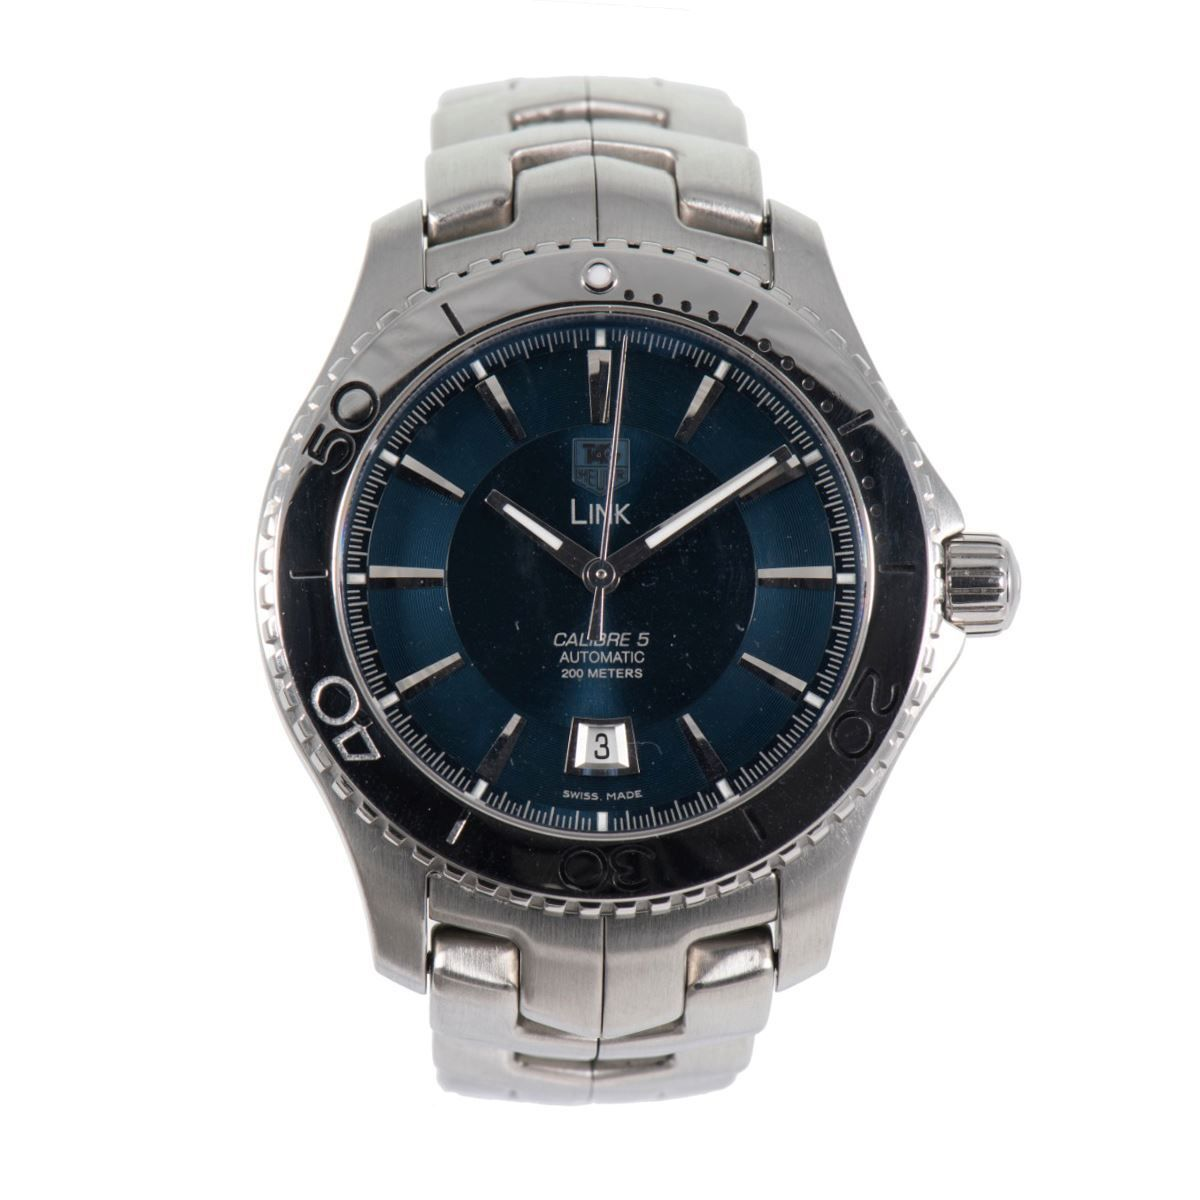 Tag Heuer Link Automatic WJ201C Stainless Steel Blue Dial 42mm Mens Watch